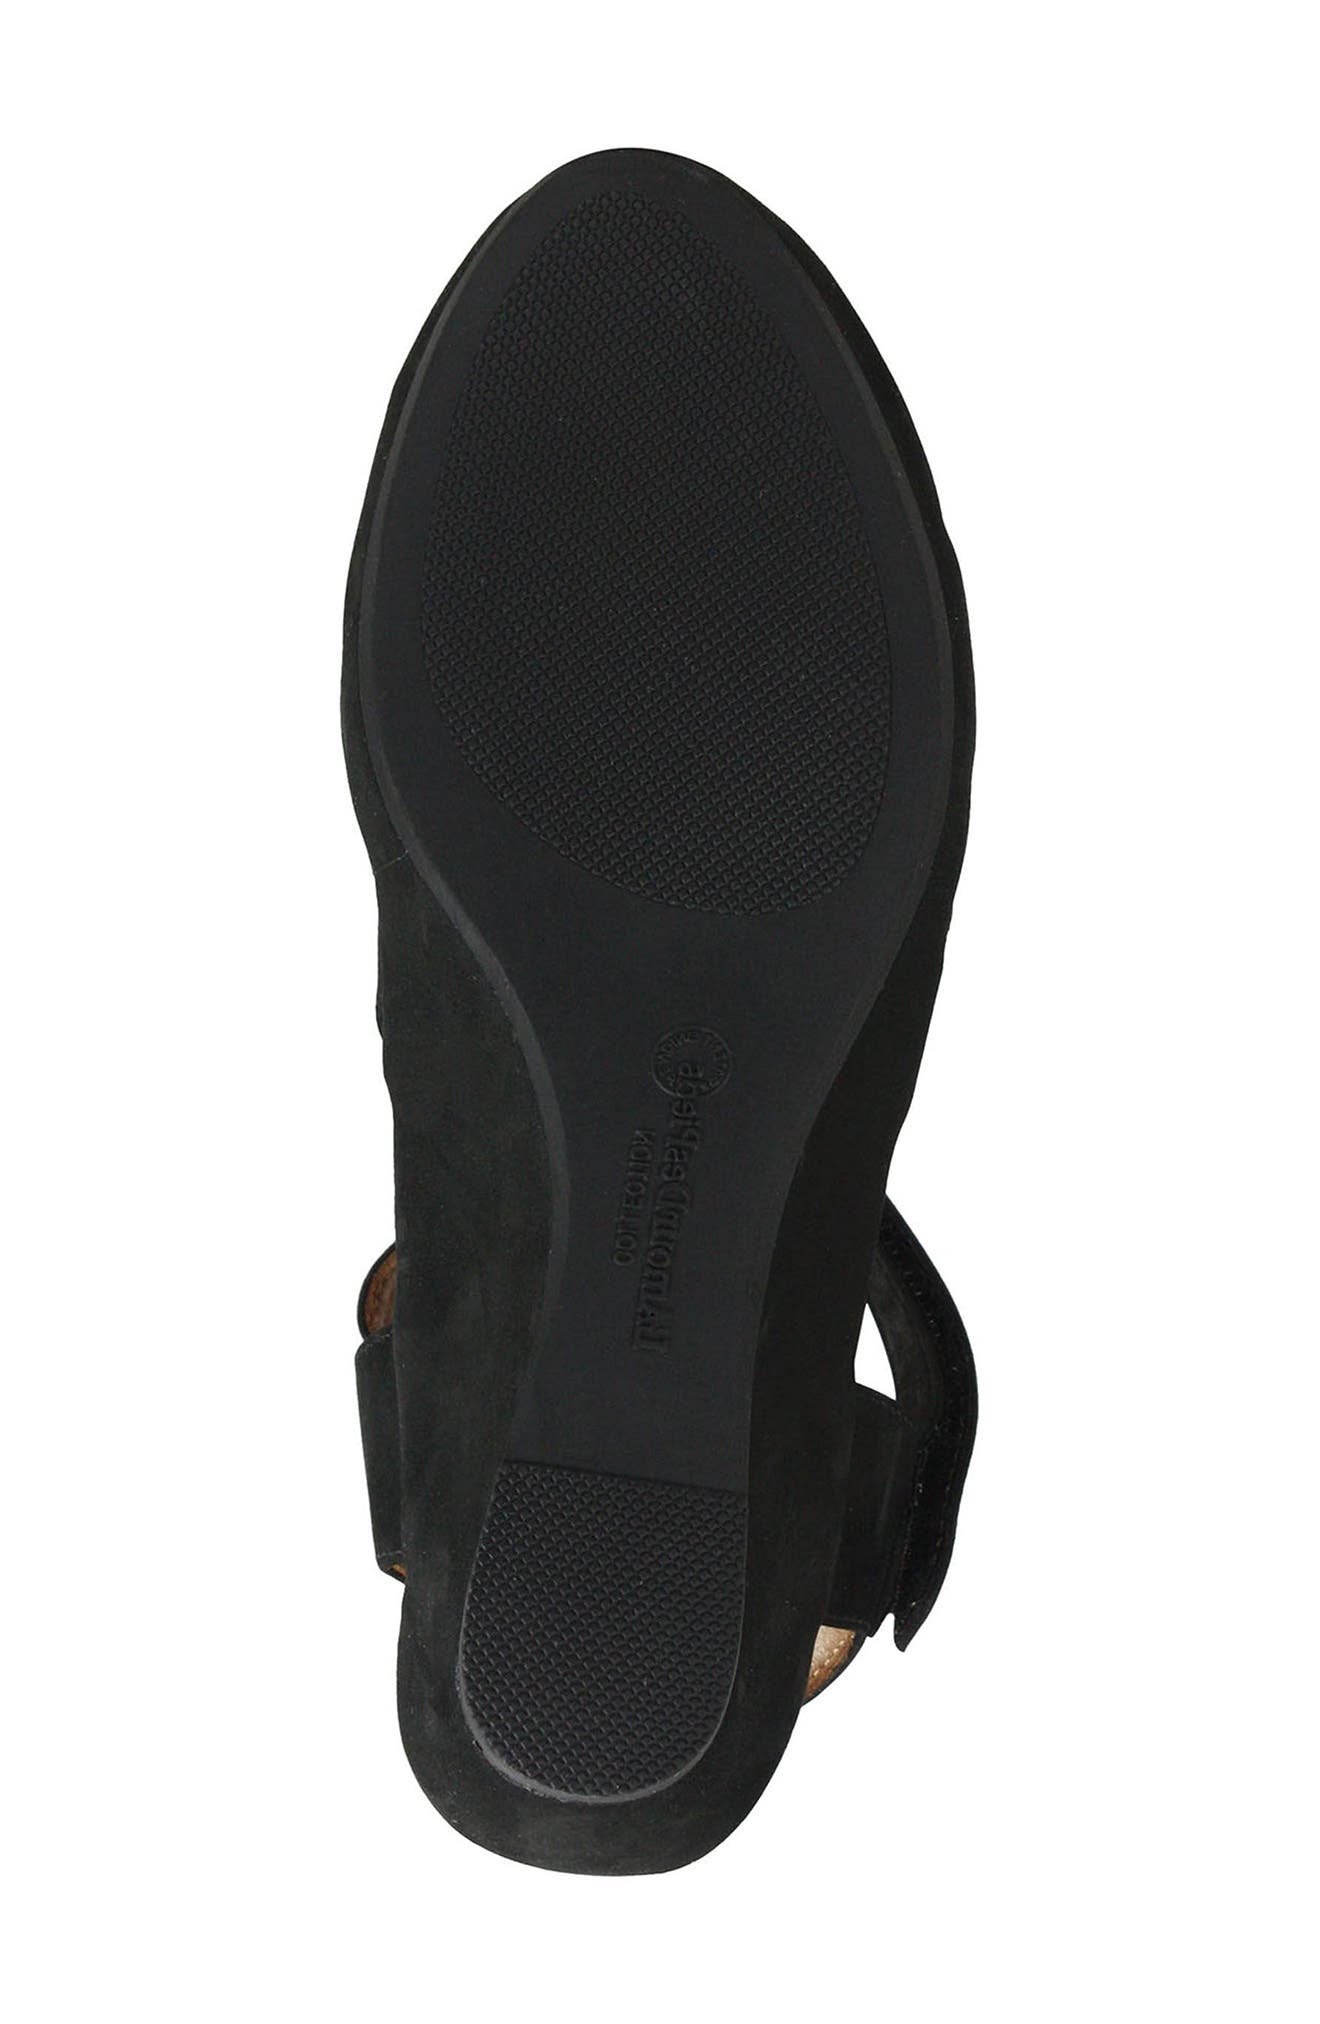 Burcie Wedge Sandal,                             Alternate thumbnail 6, color,                             BLACK NUBUCK LEATHER